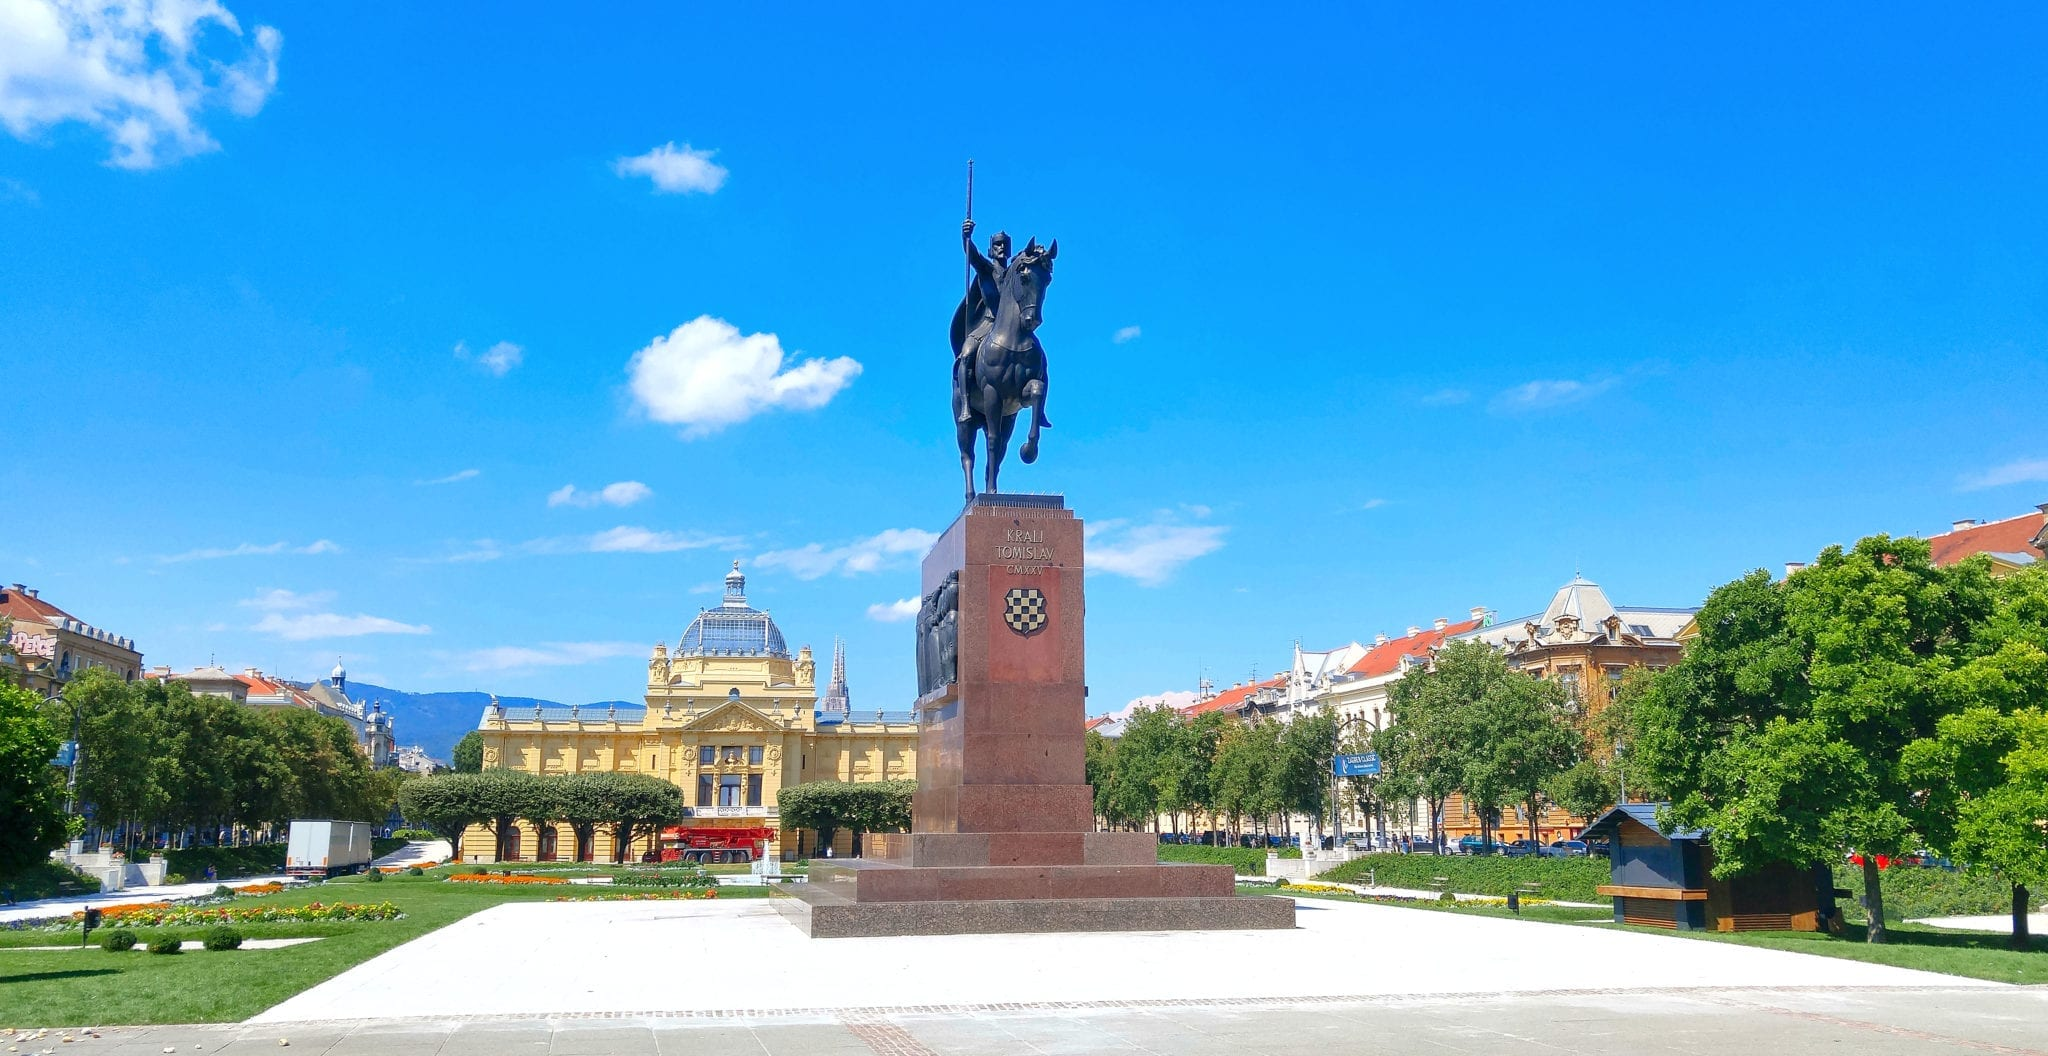 King Tomislav statue in King Tomislav square in Zagreb, Croatia